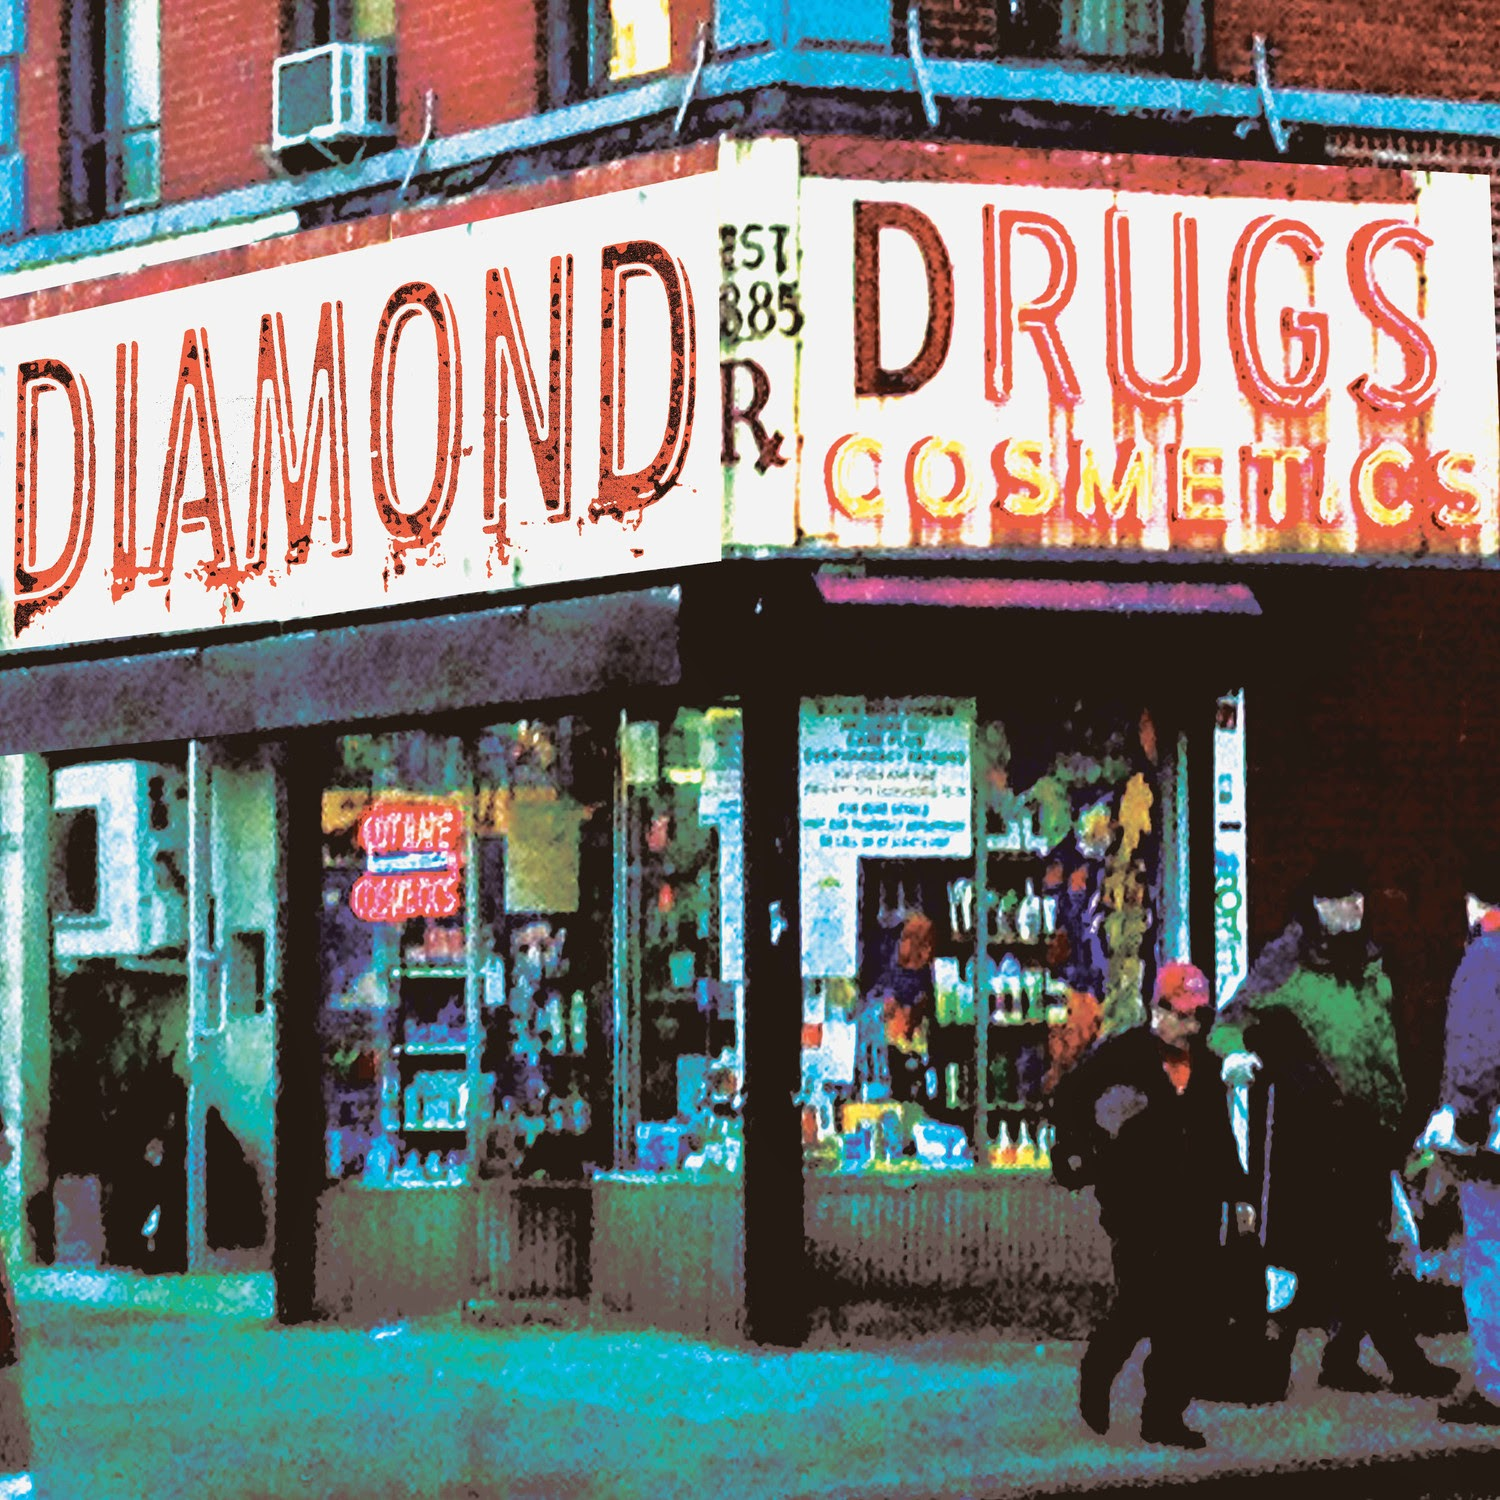 DIAMOND RUGS - (2015) Cosmetics